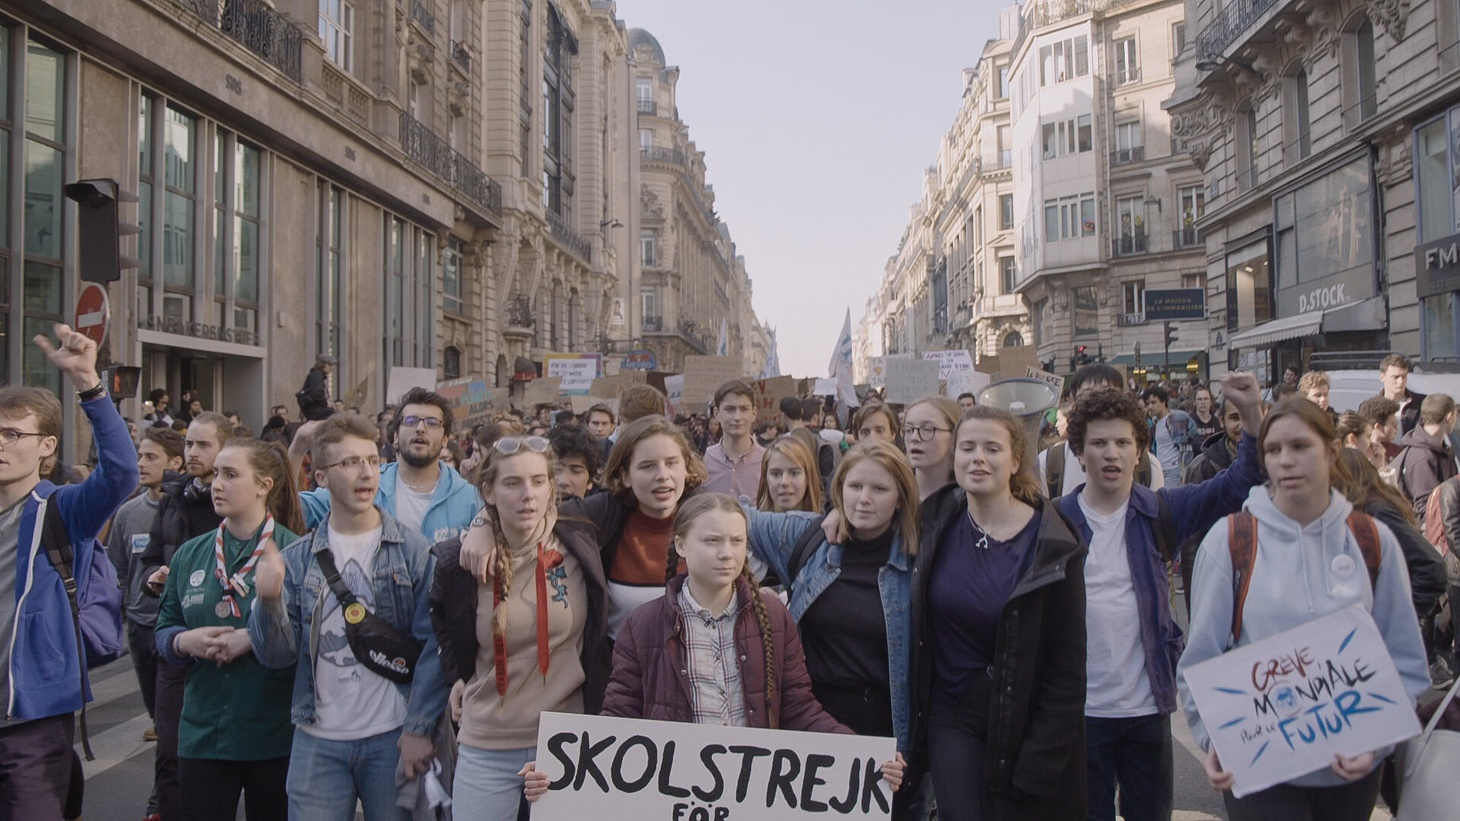 Greta Thunberg's protests sparked a worldwide movement last year.